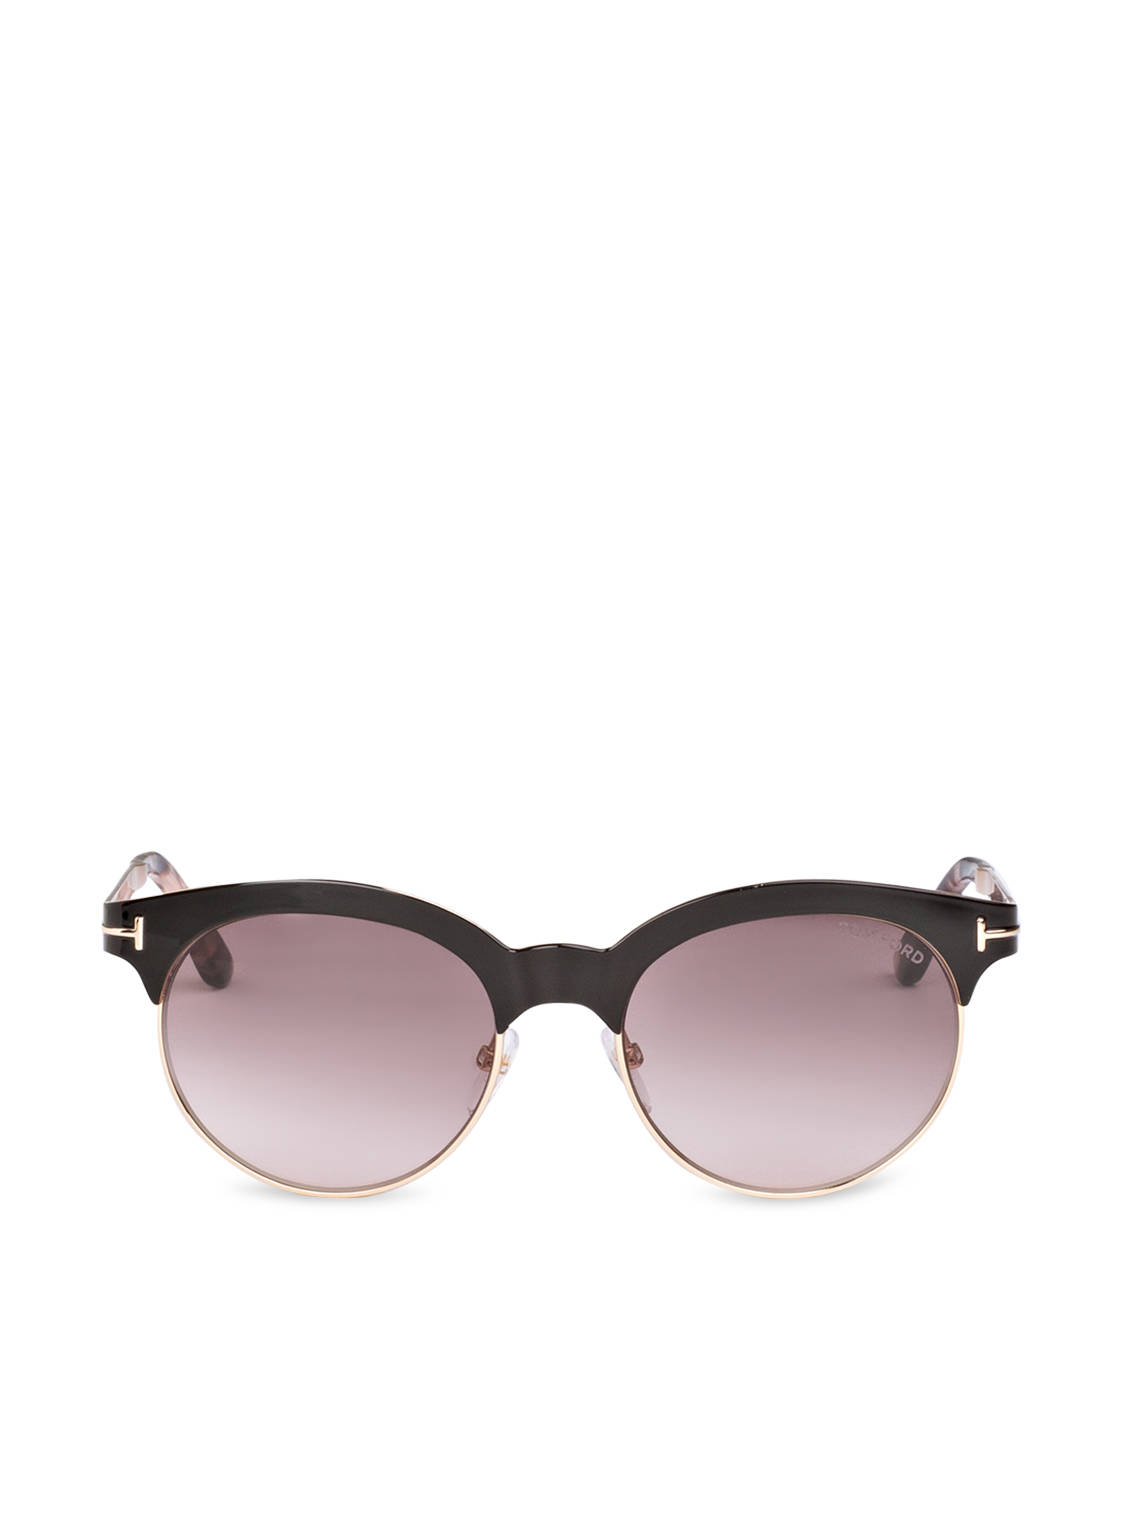 Tom Ford Sonnenbrille Ft438 Angela jLiOXmw